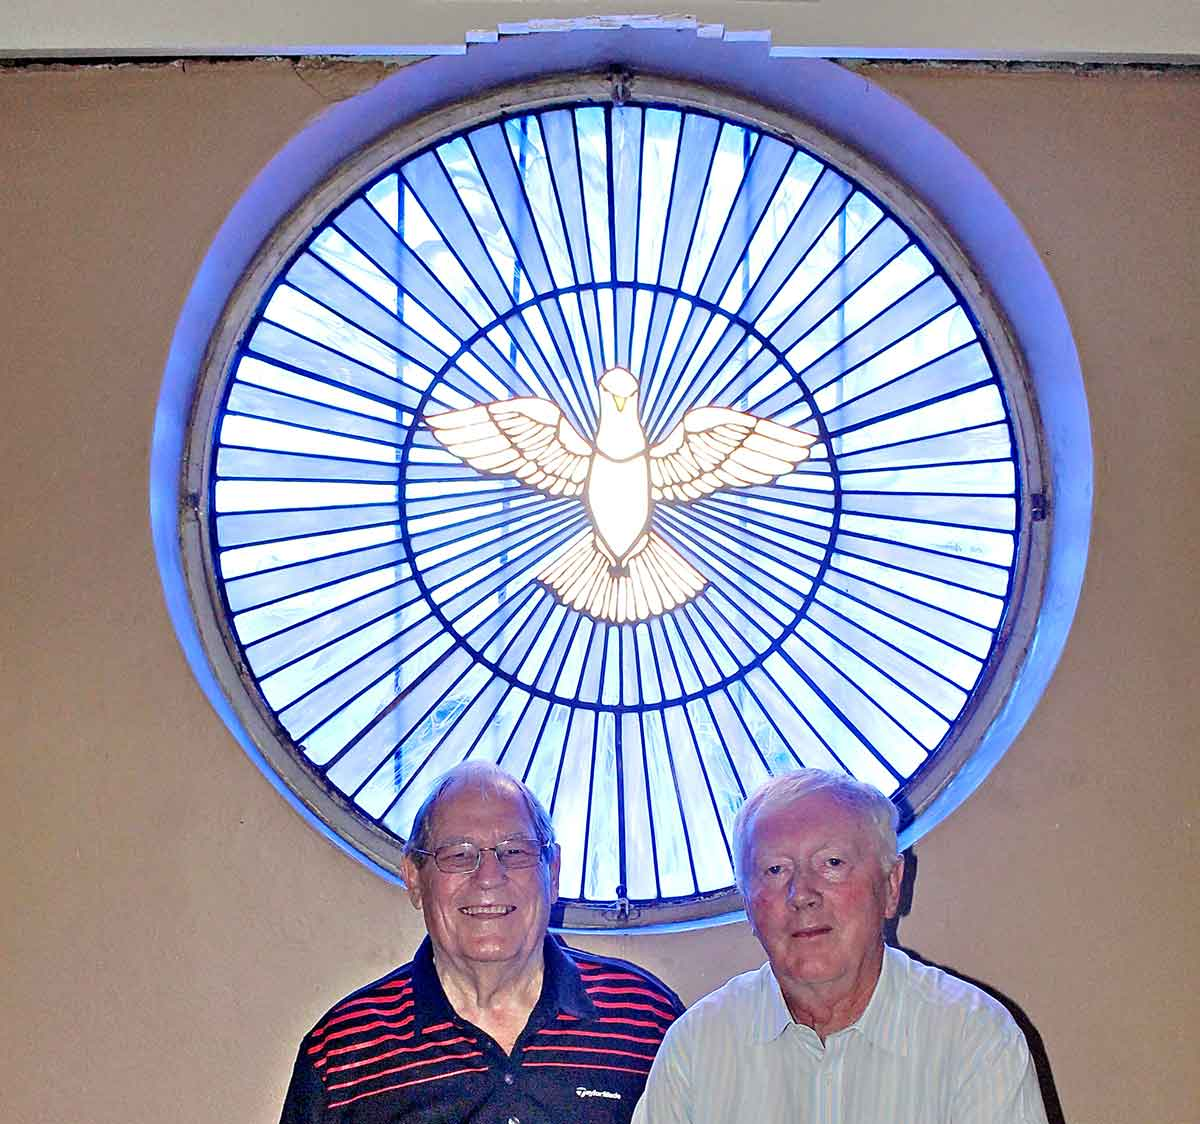 Stained Glass Window Lights Up Church's Centenary